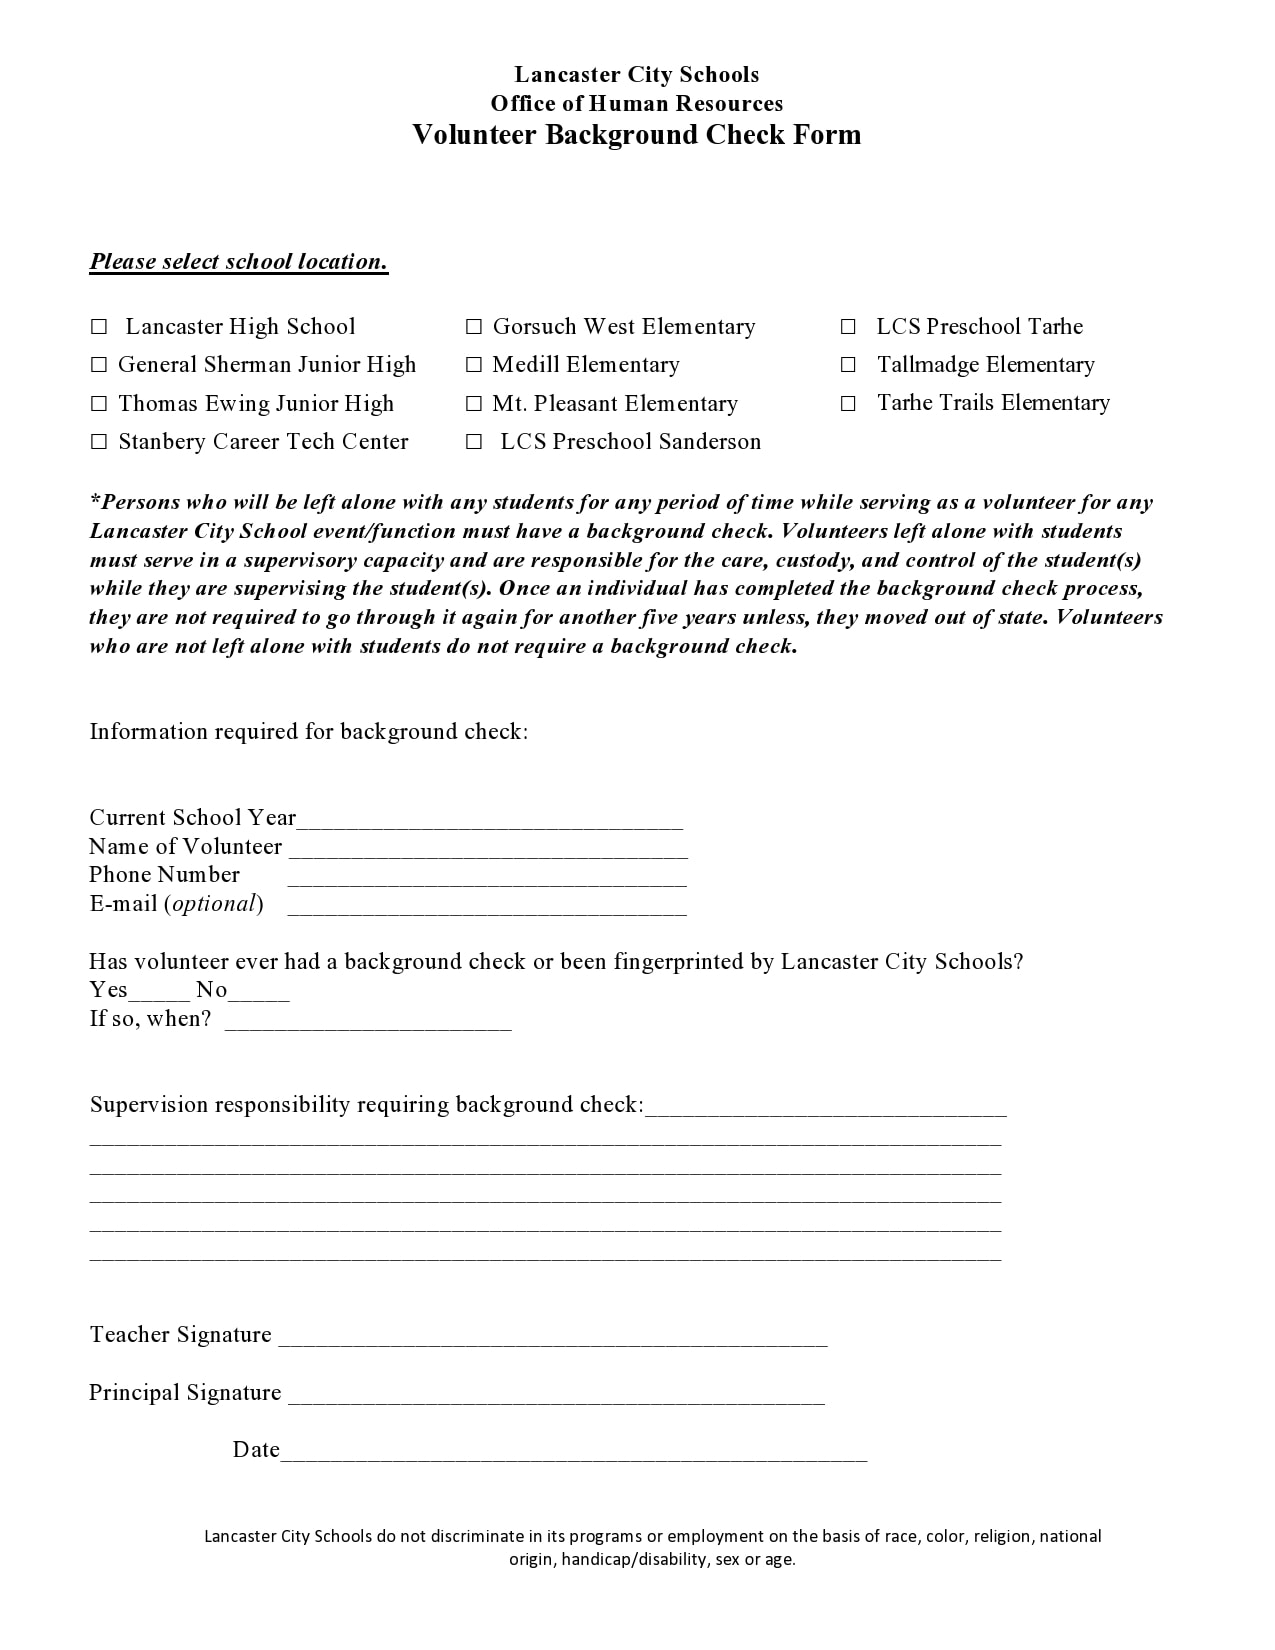 background check form 06